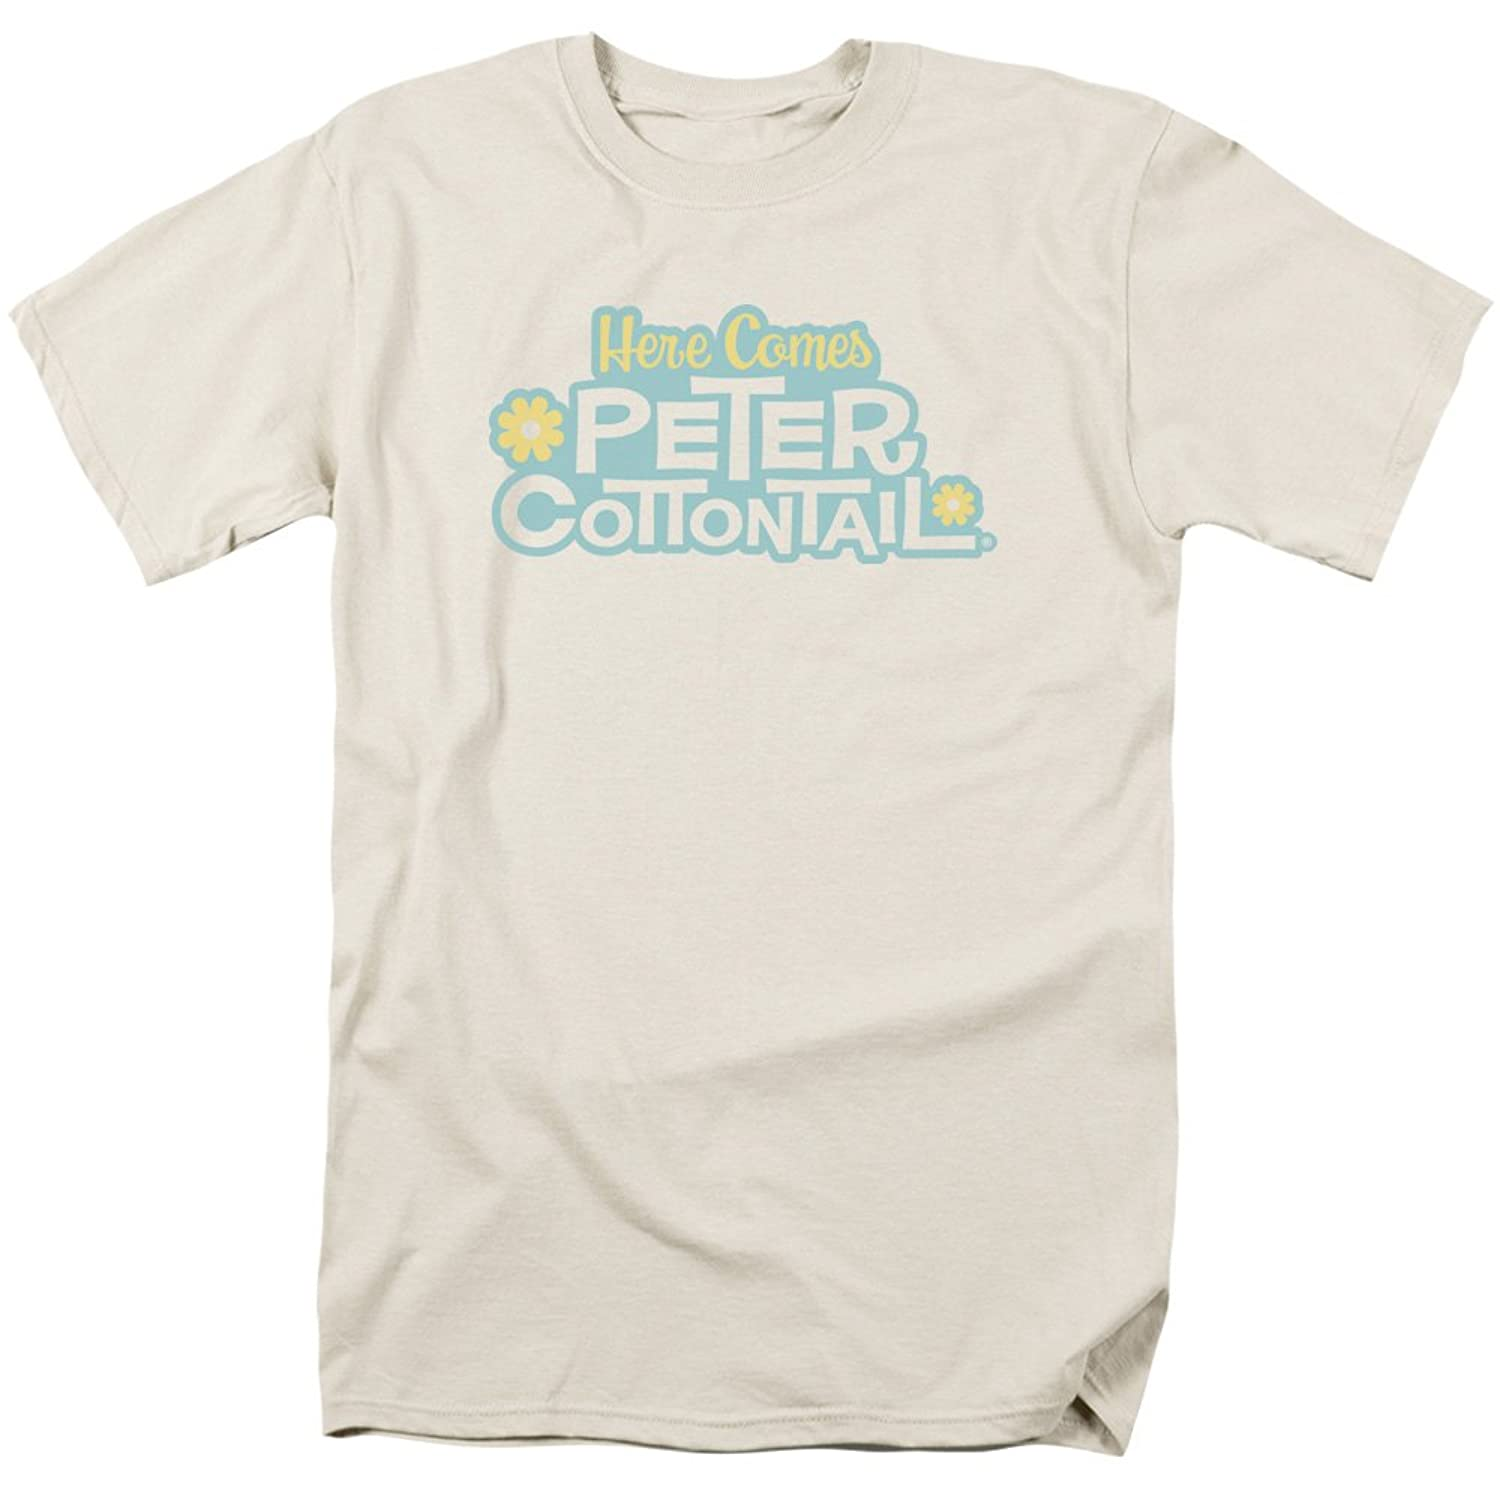 Here Comes Peter Cottontail Animated Holiday Film Logo Cream Adult T-Shirt